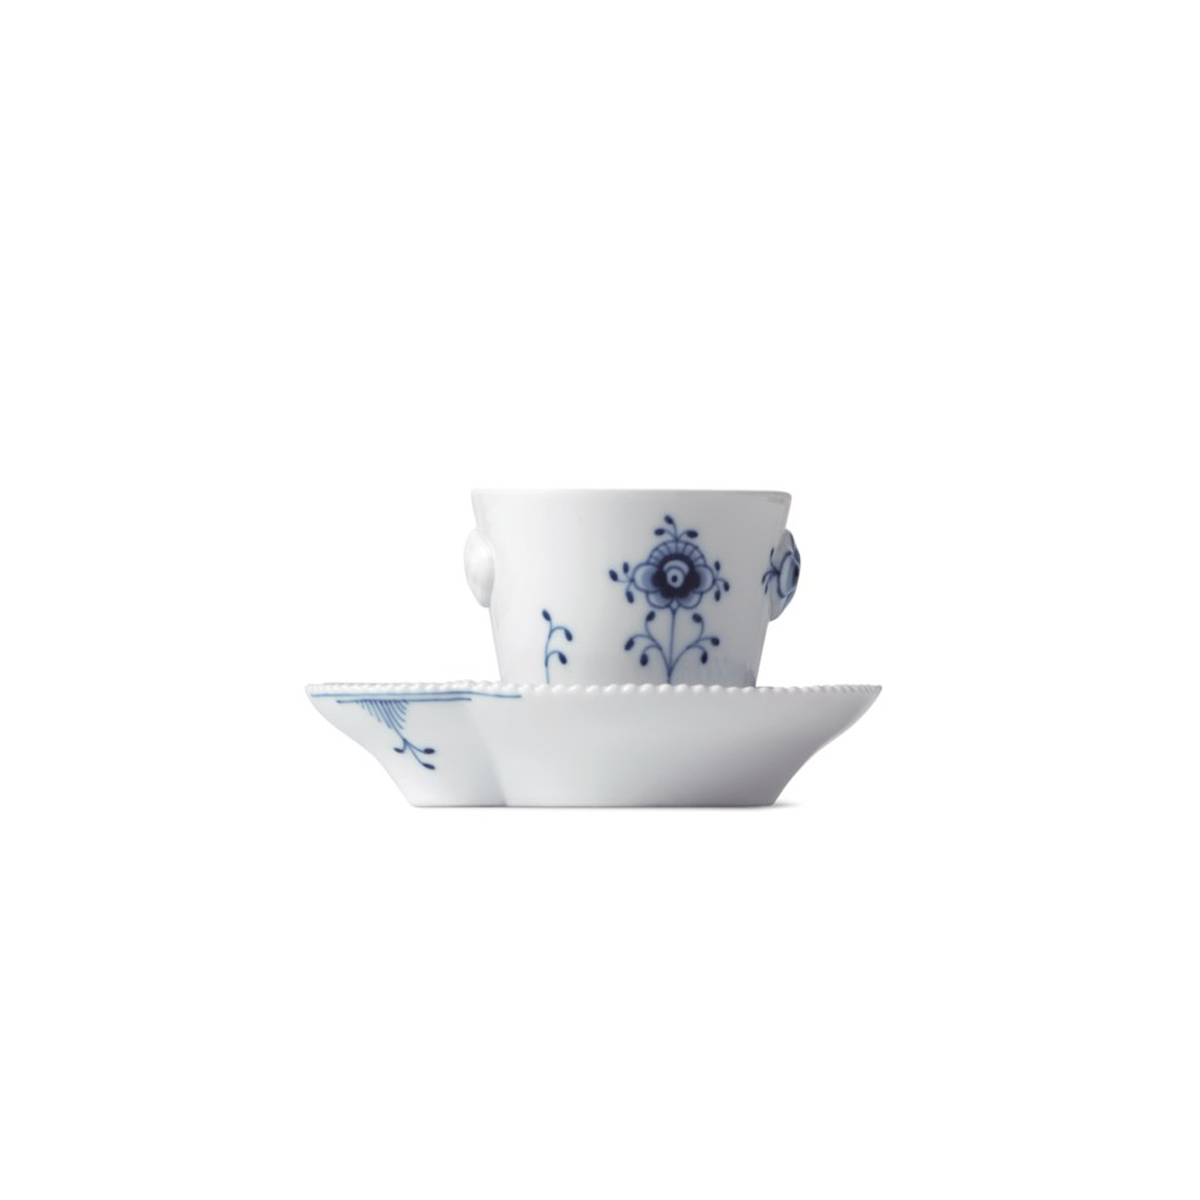 Royal Copenhagen, Blue Elements Espresso Cup and Saucer 3.25oz.